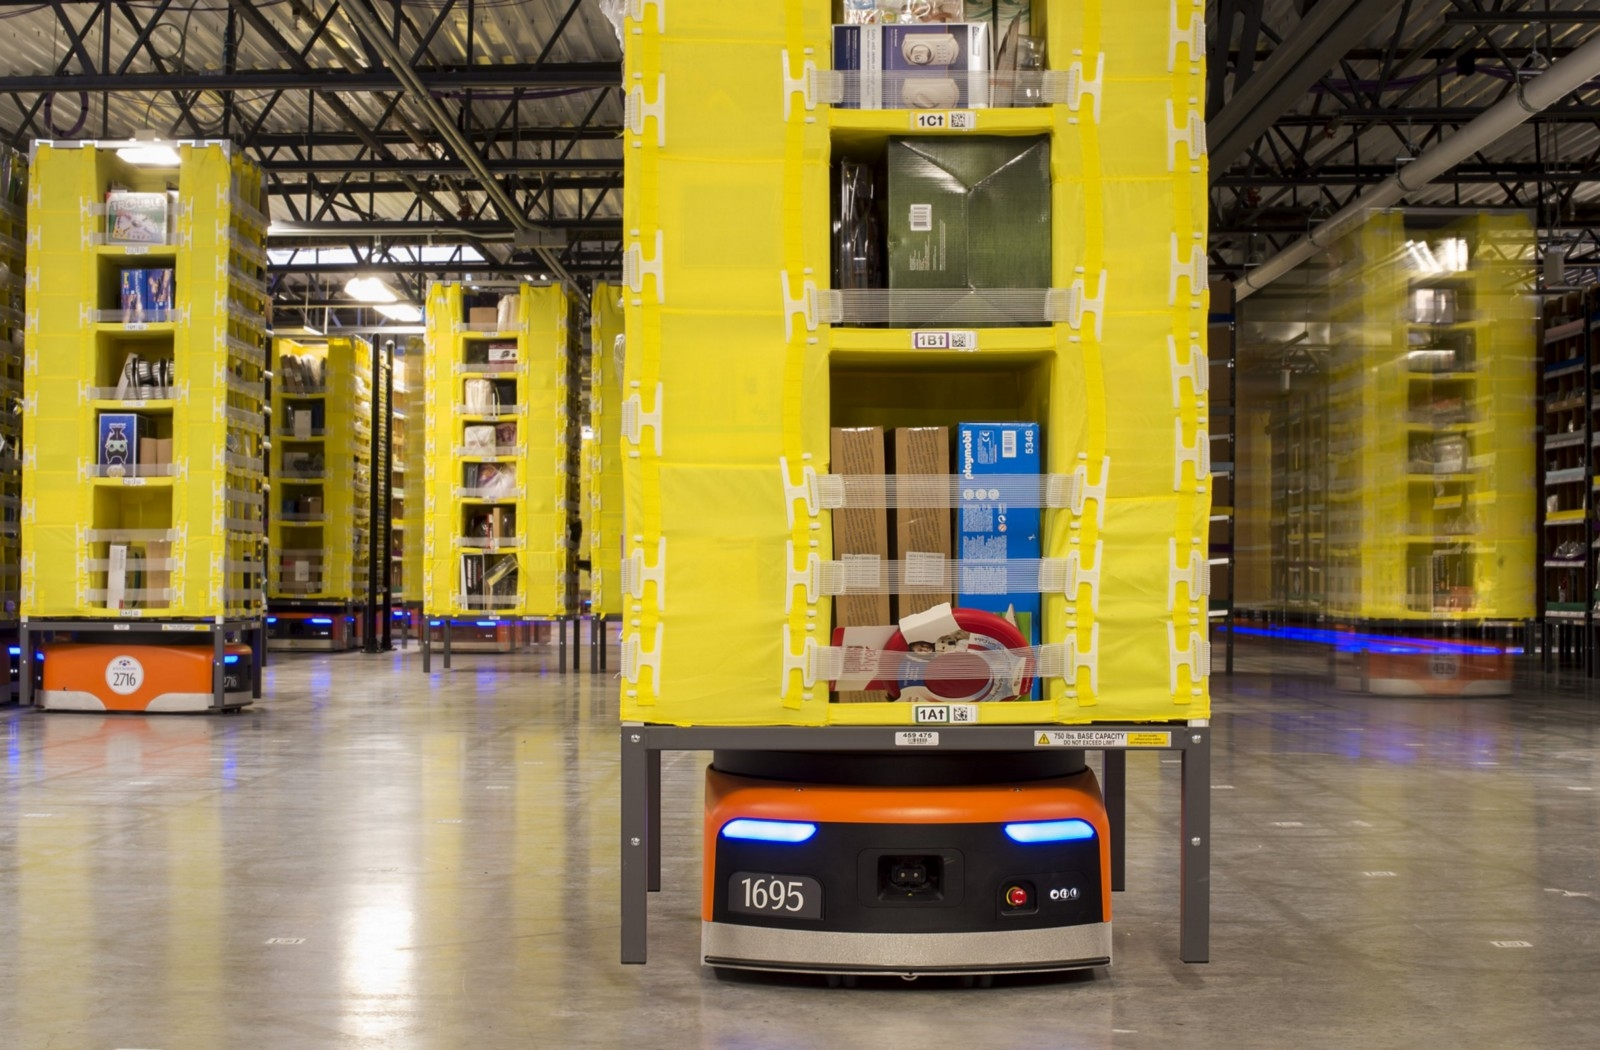 Immagine AMAZON ROBOTICS, PRESTO IN ITALIA